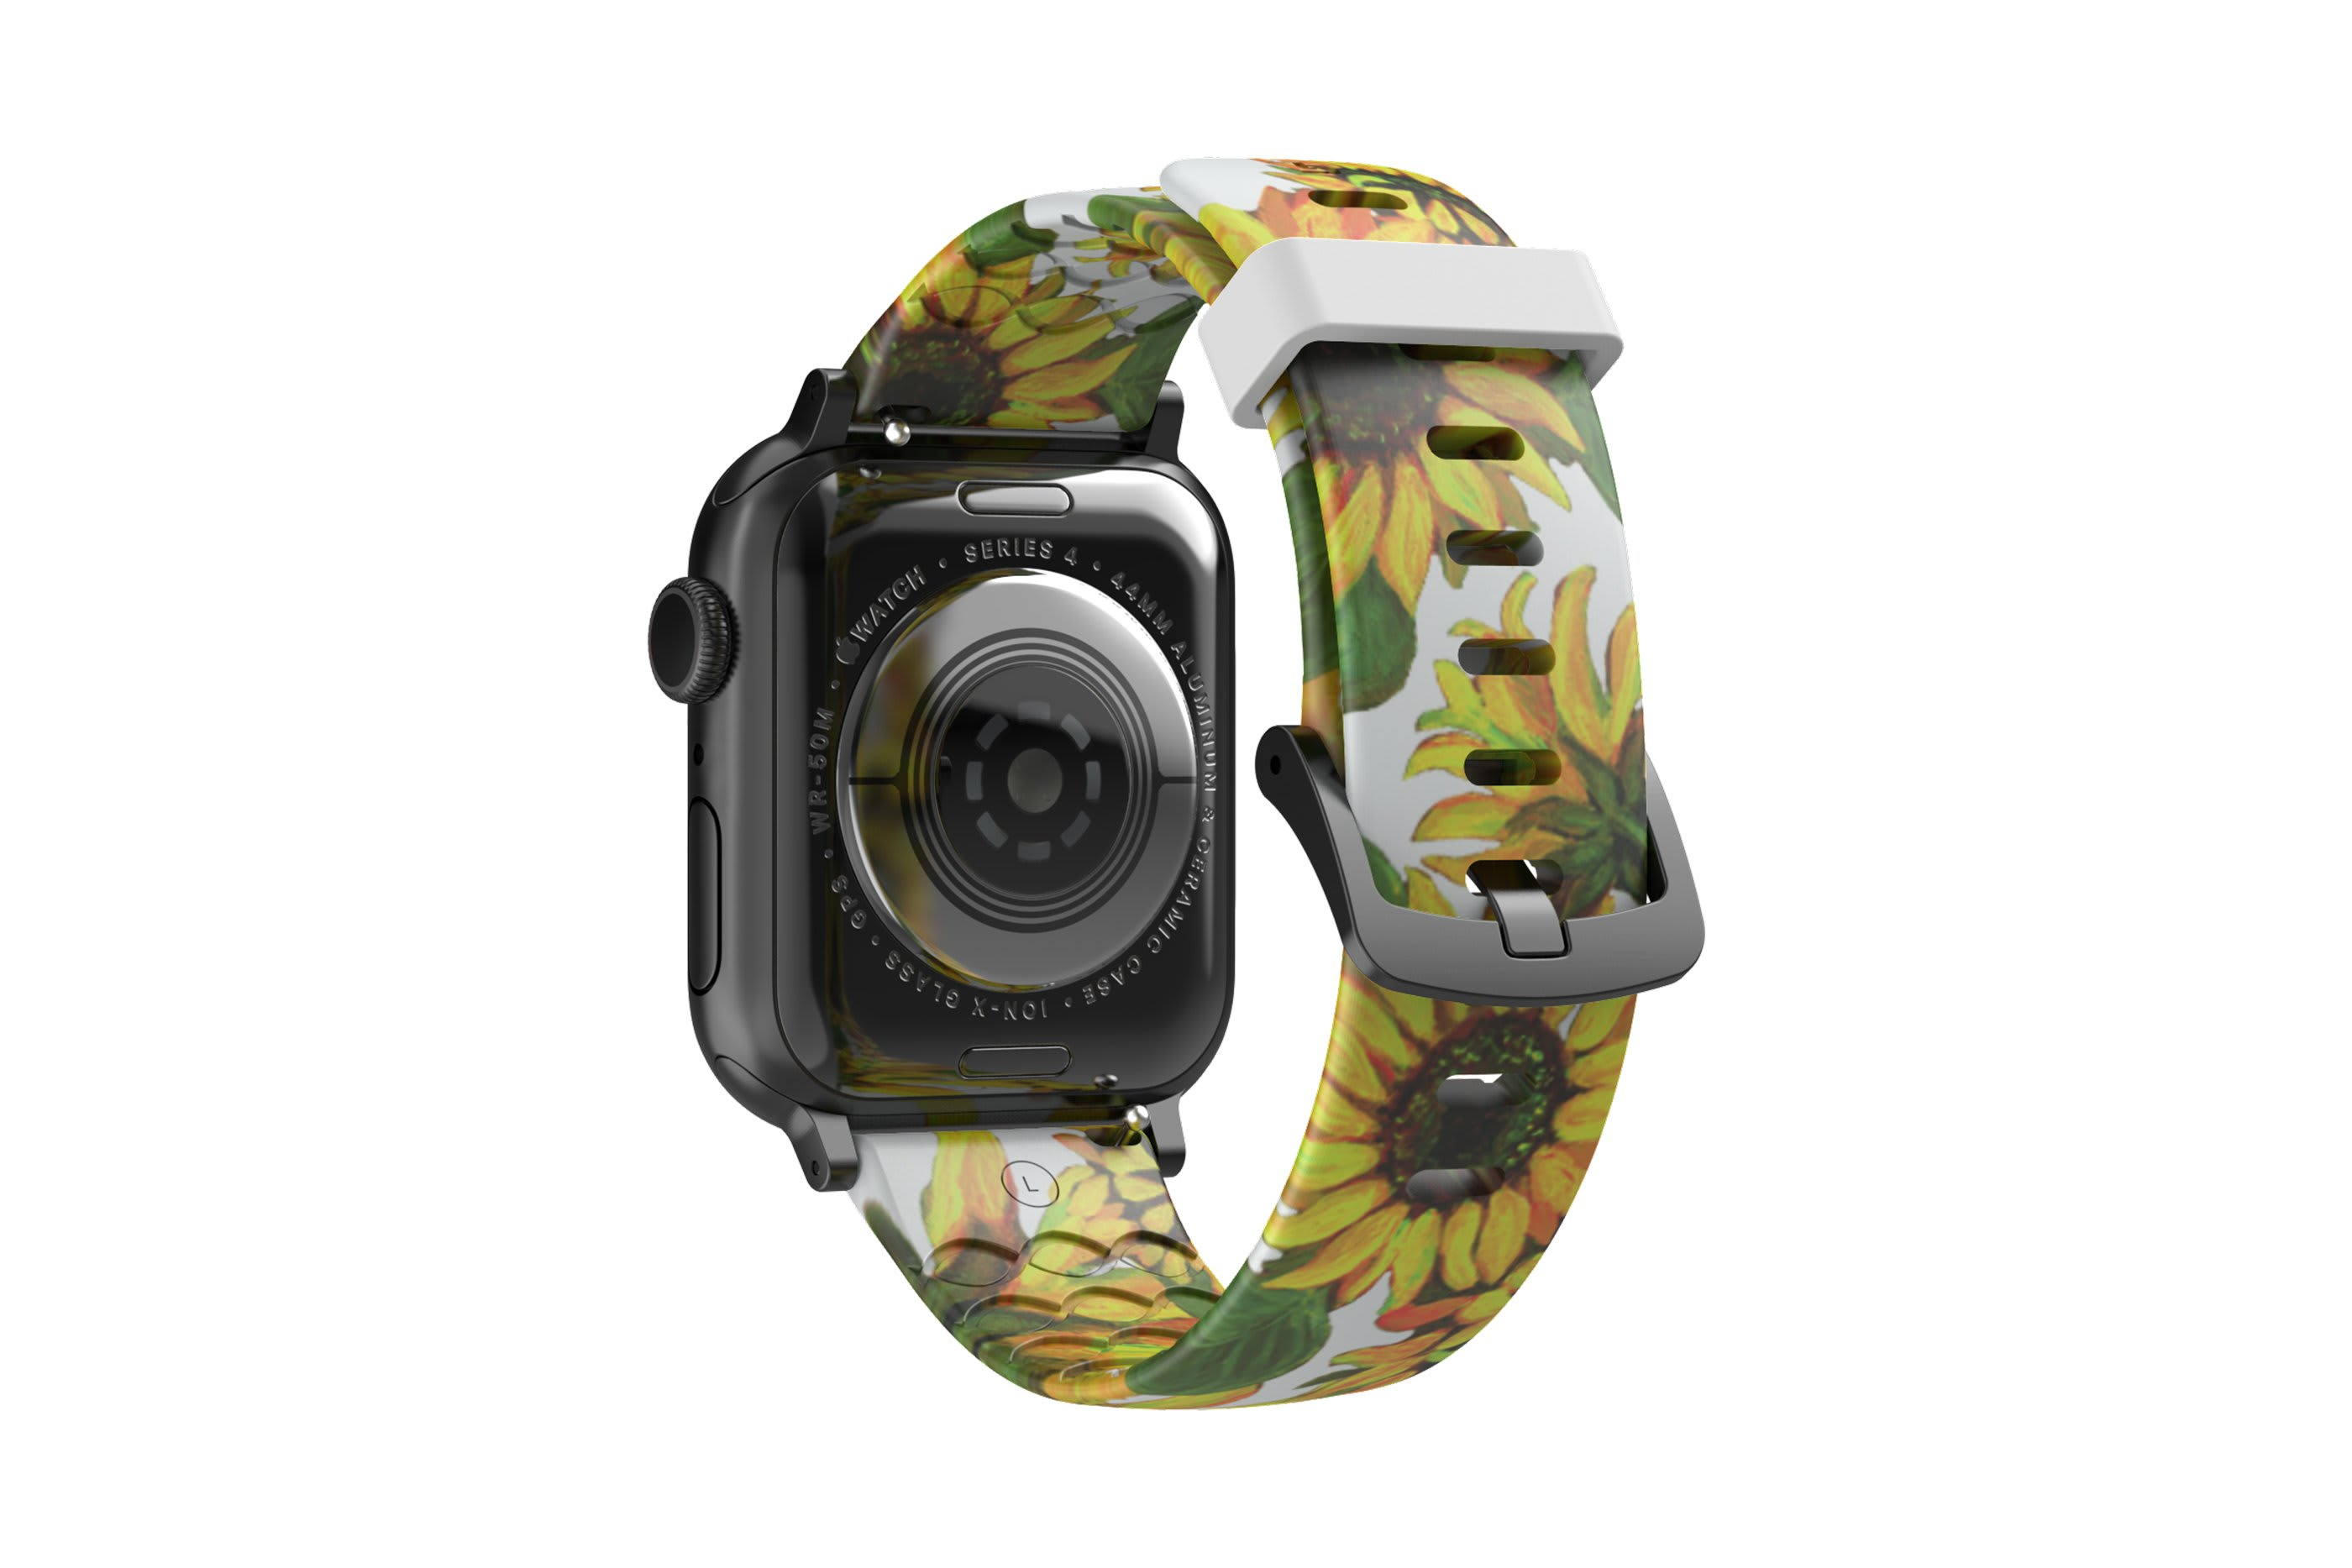 Sunflower Apple Watch Band with gray hardware viewed from top down